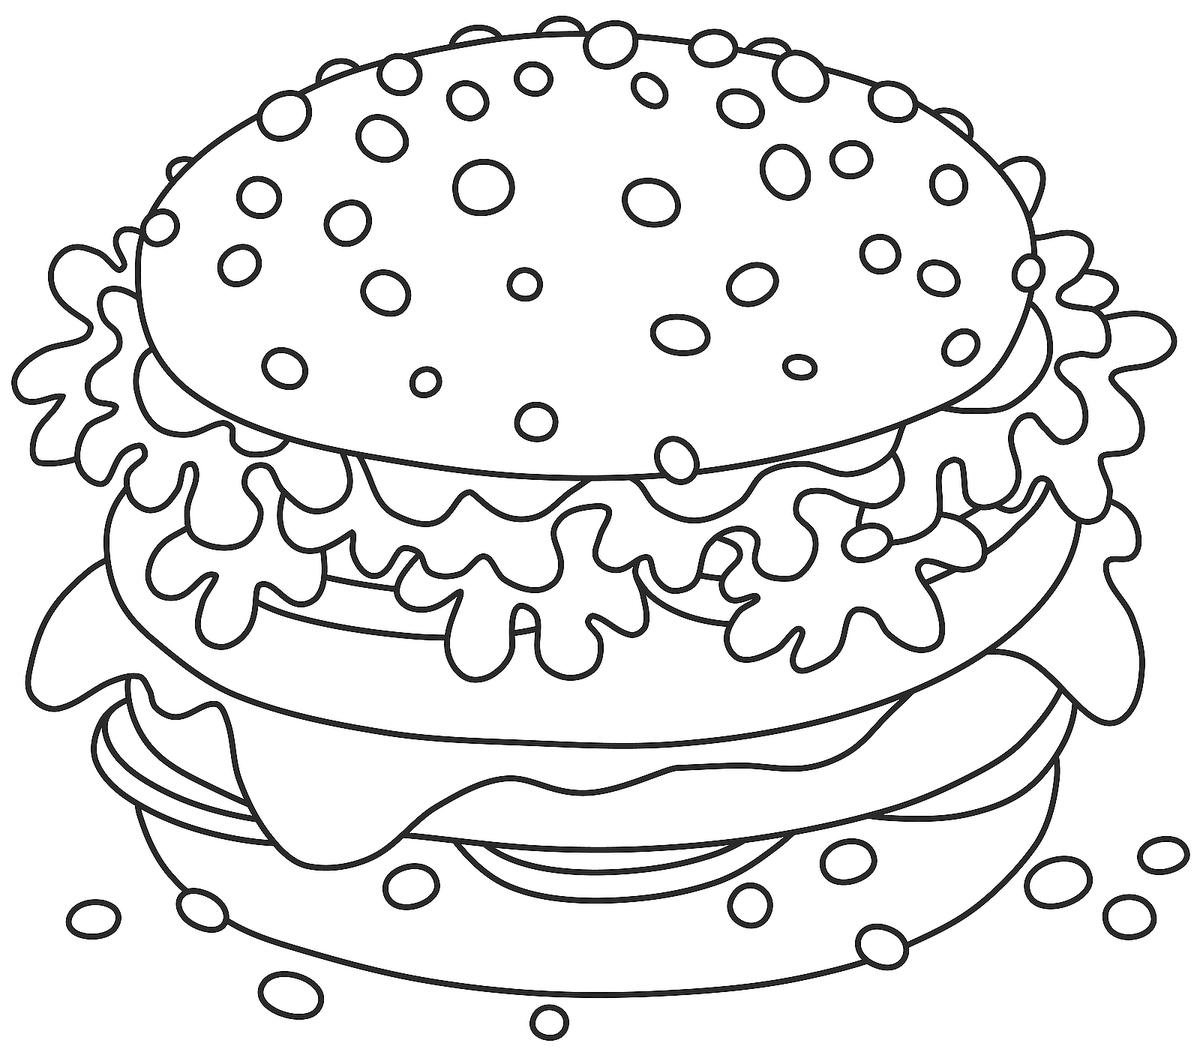 coloring food pages 20 free printable october coloring pages food pages coloring